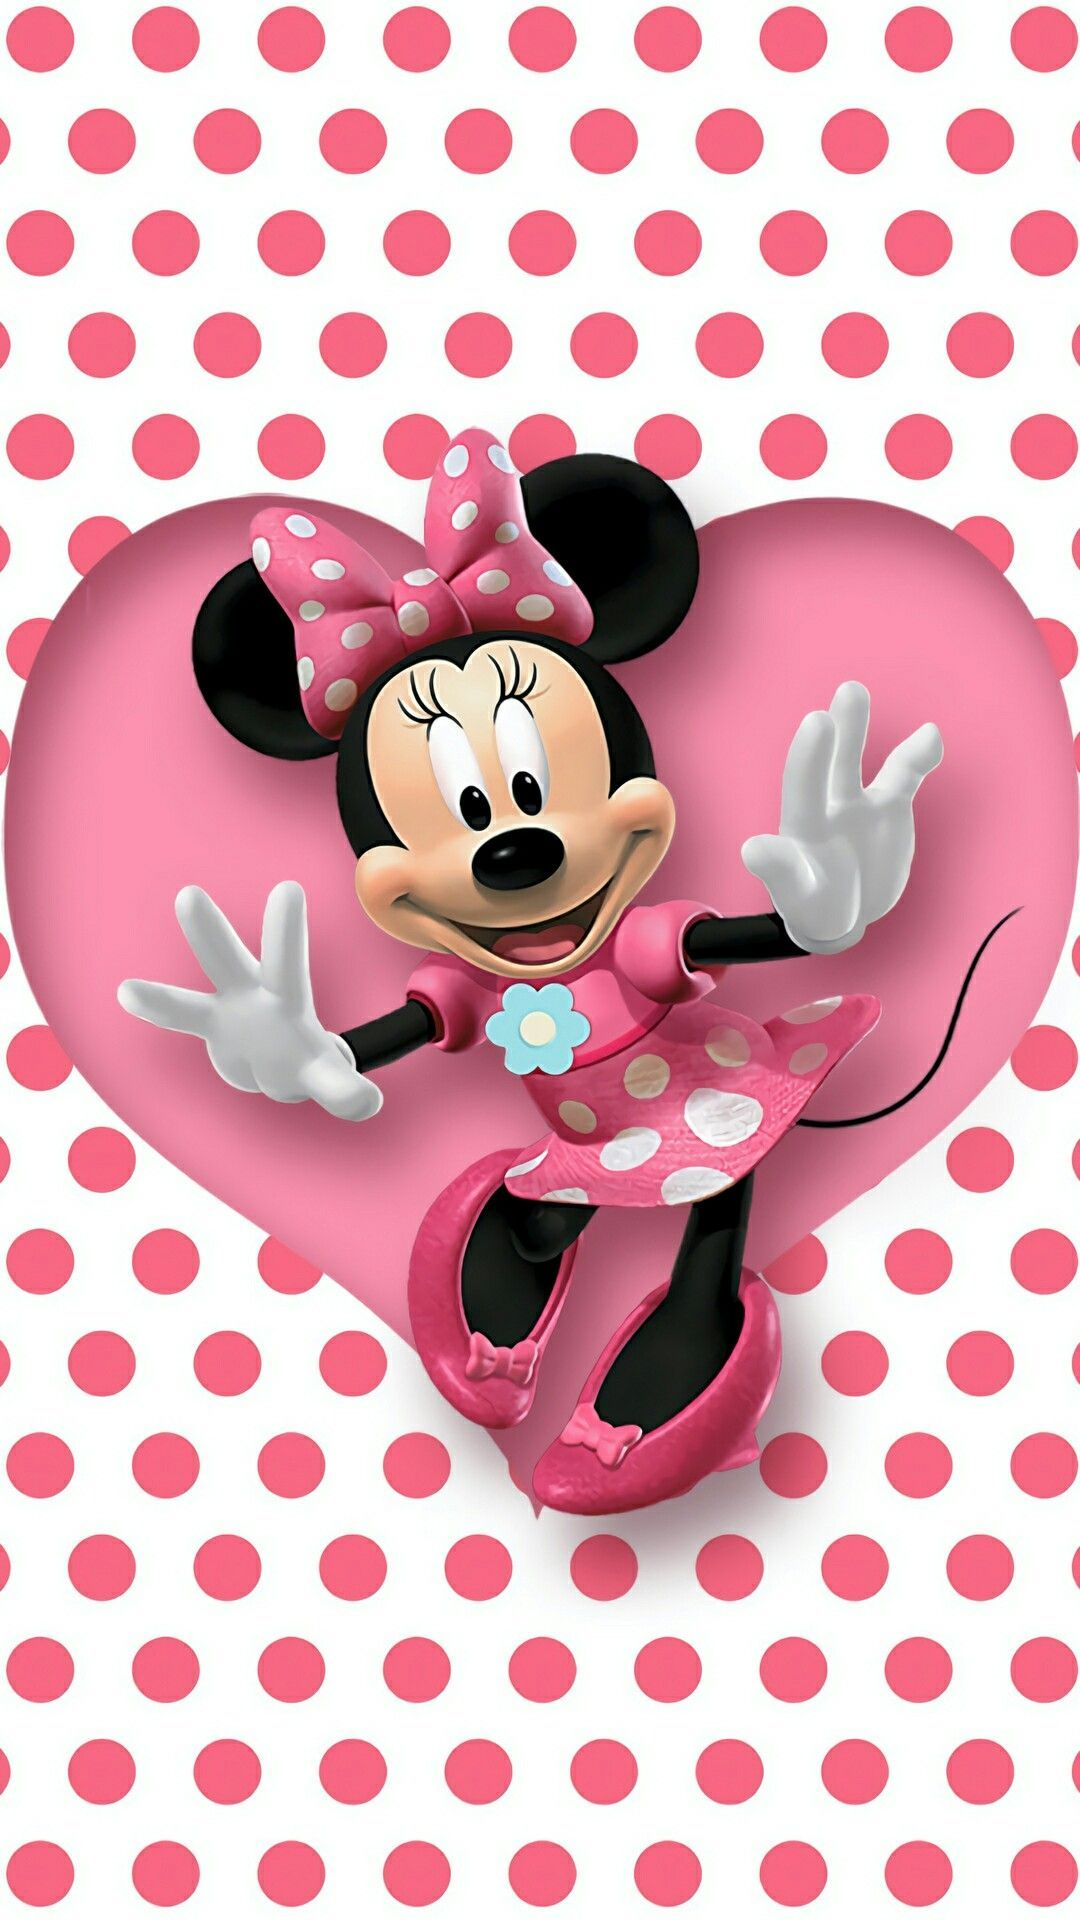 Polka Dot Minnie Mouse Image in 2020 (With images